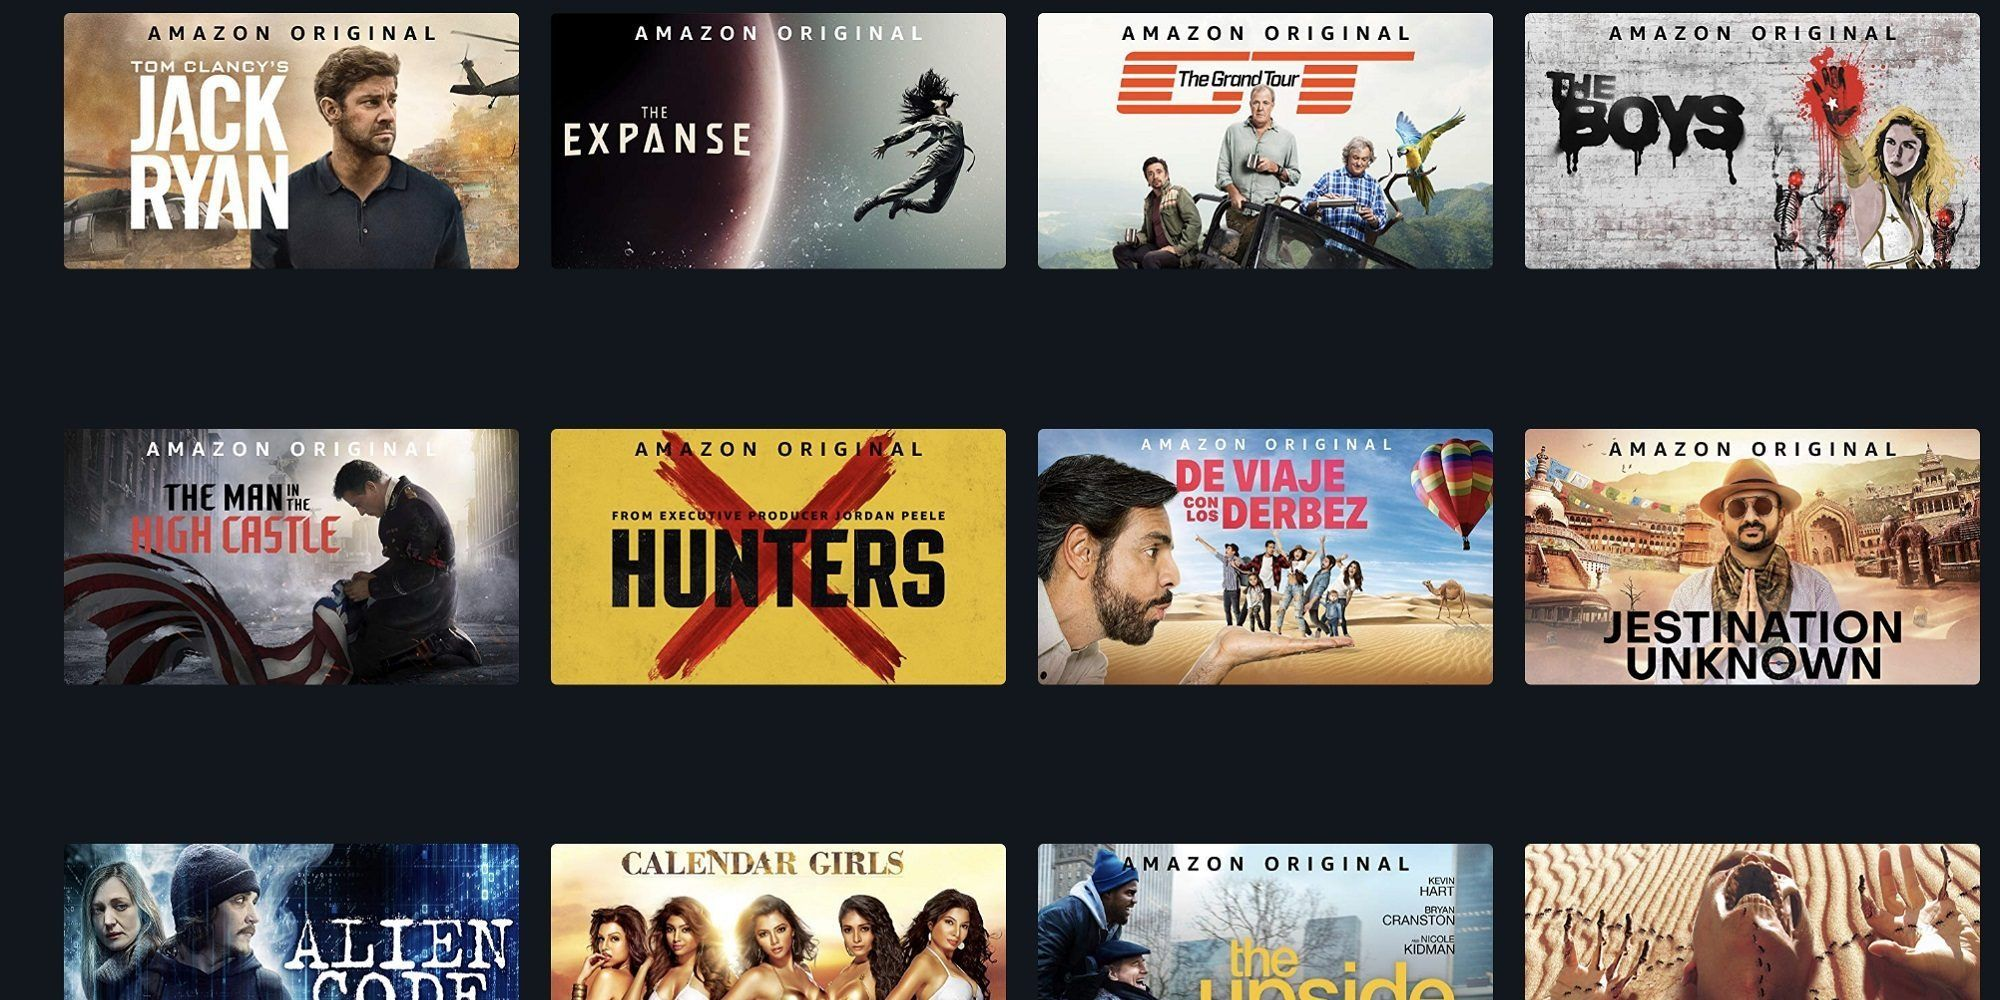 Apple TV Plus vs Amazon Prime Video Pricing, content